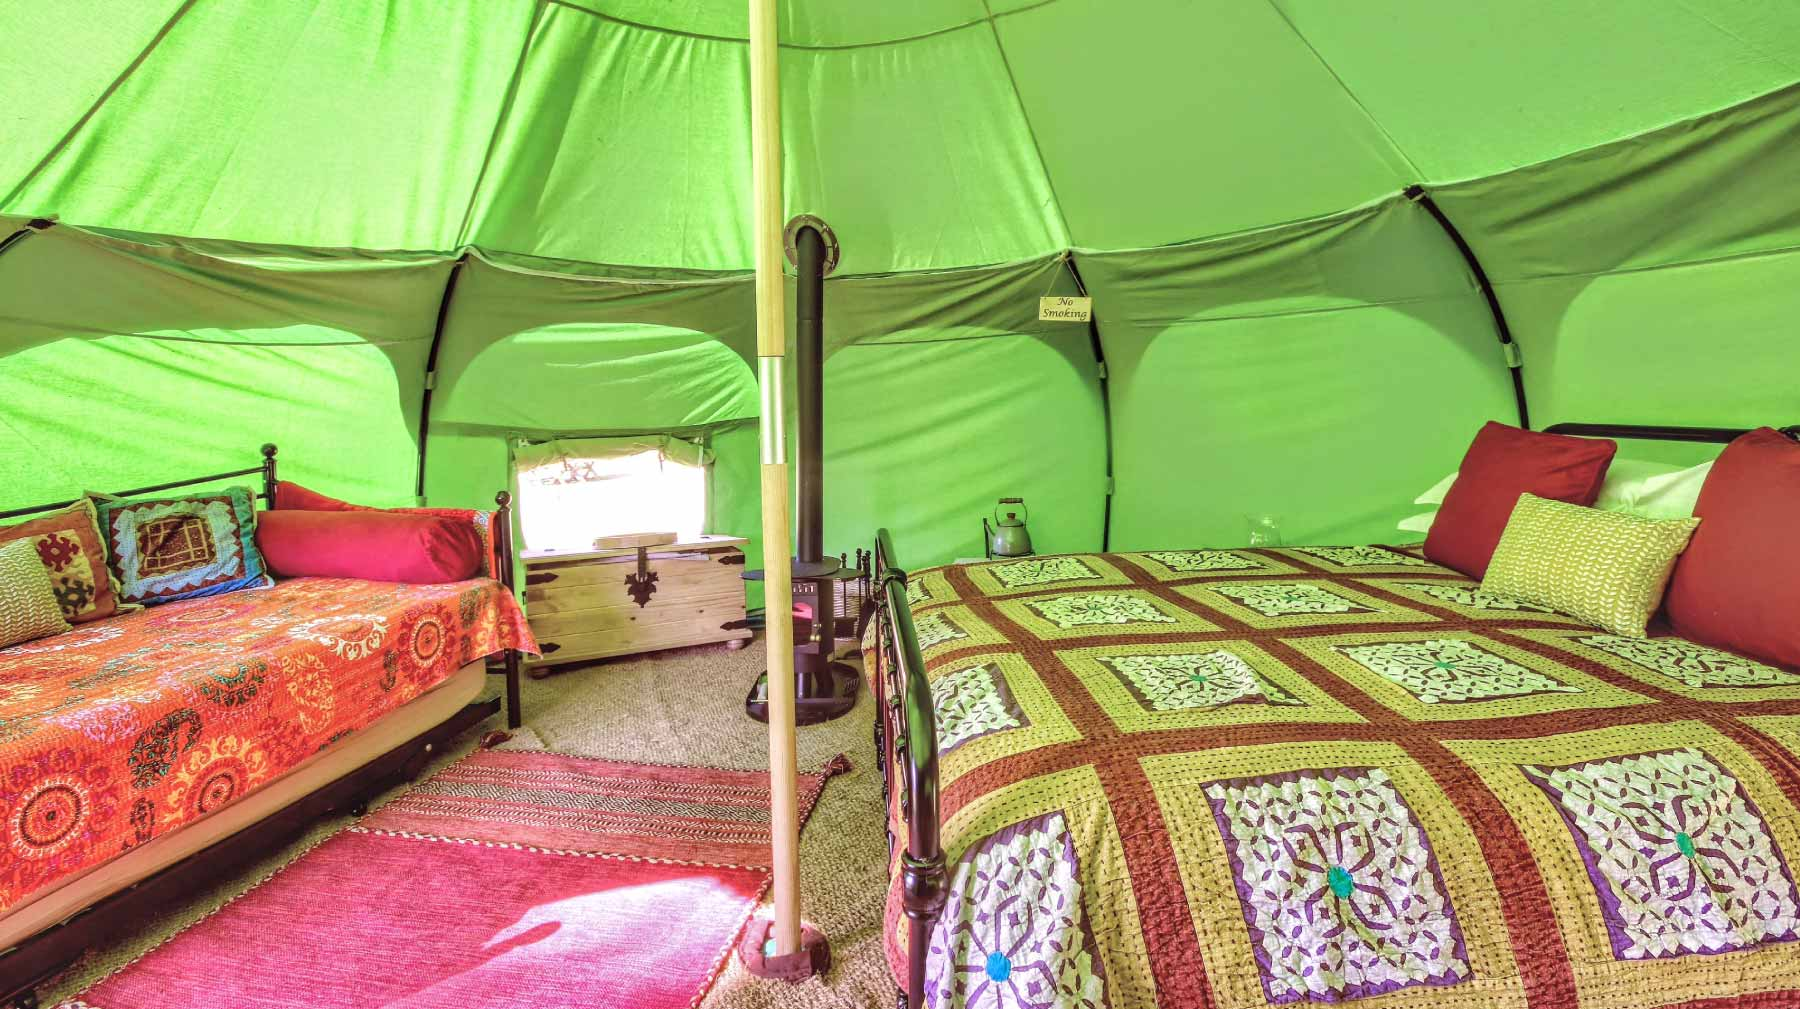 inside a lotus belle tent showing a large bed and sofa